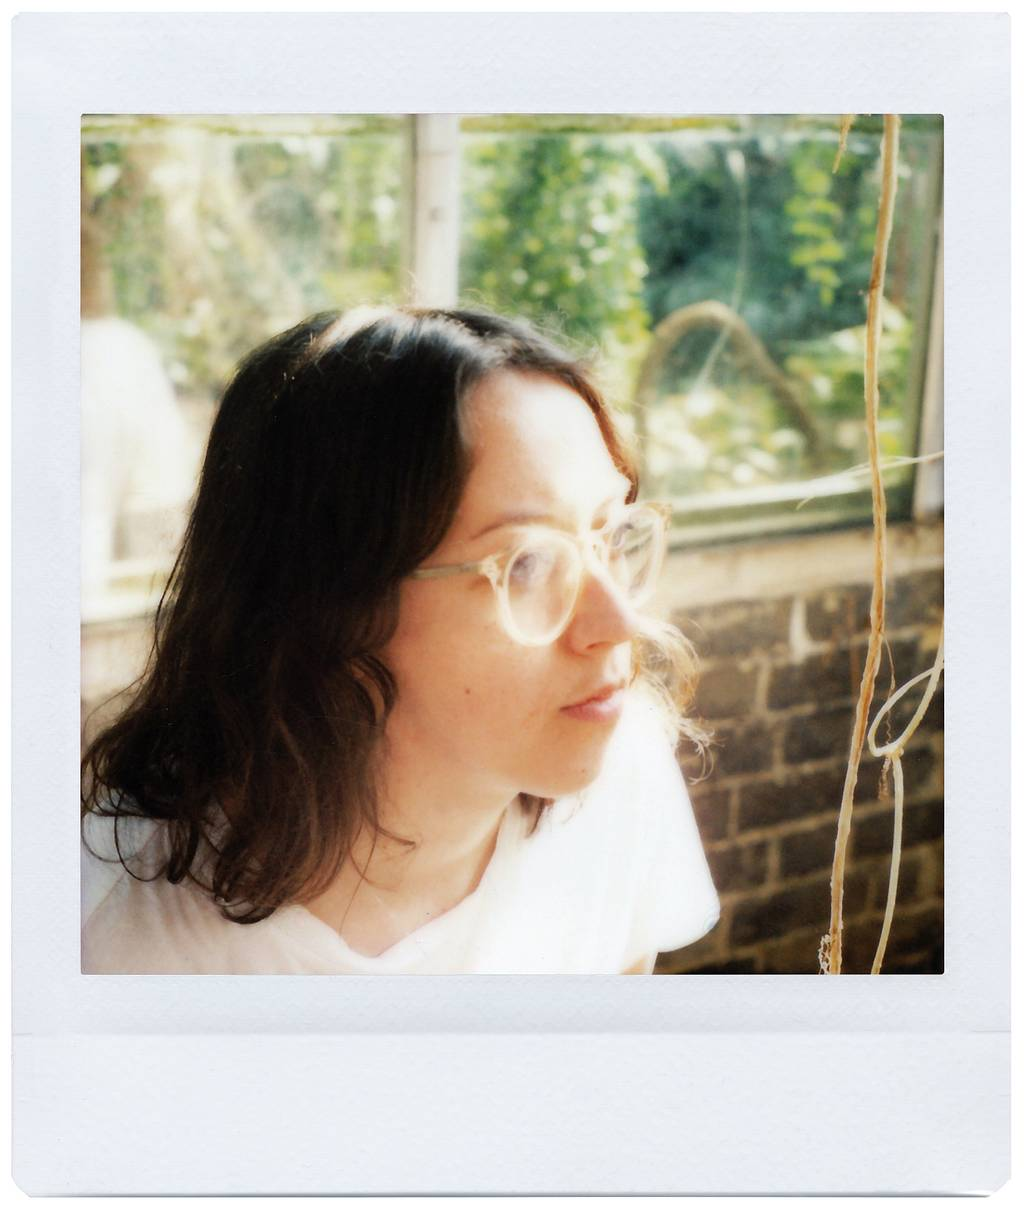 Leanne Surfleet Seeing the Self with the Lomo'Instant Square Glass